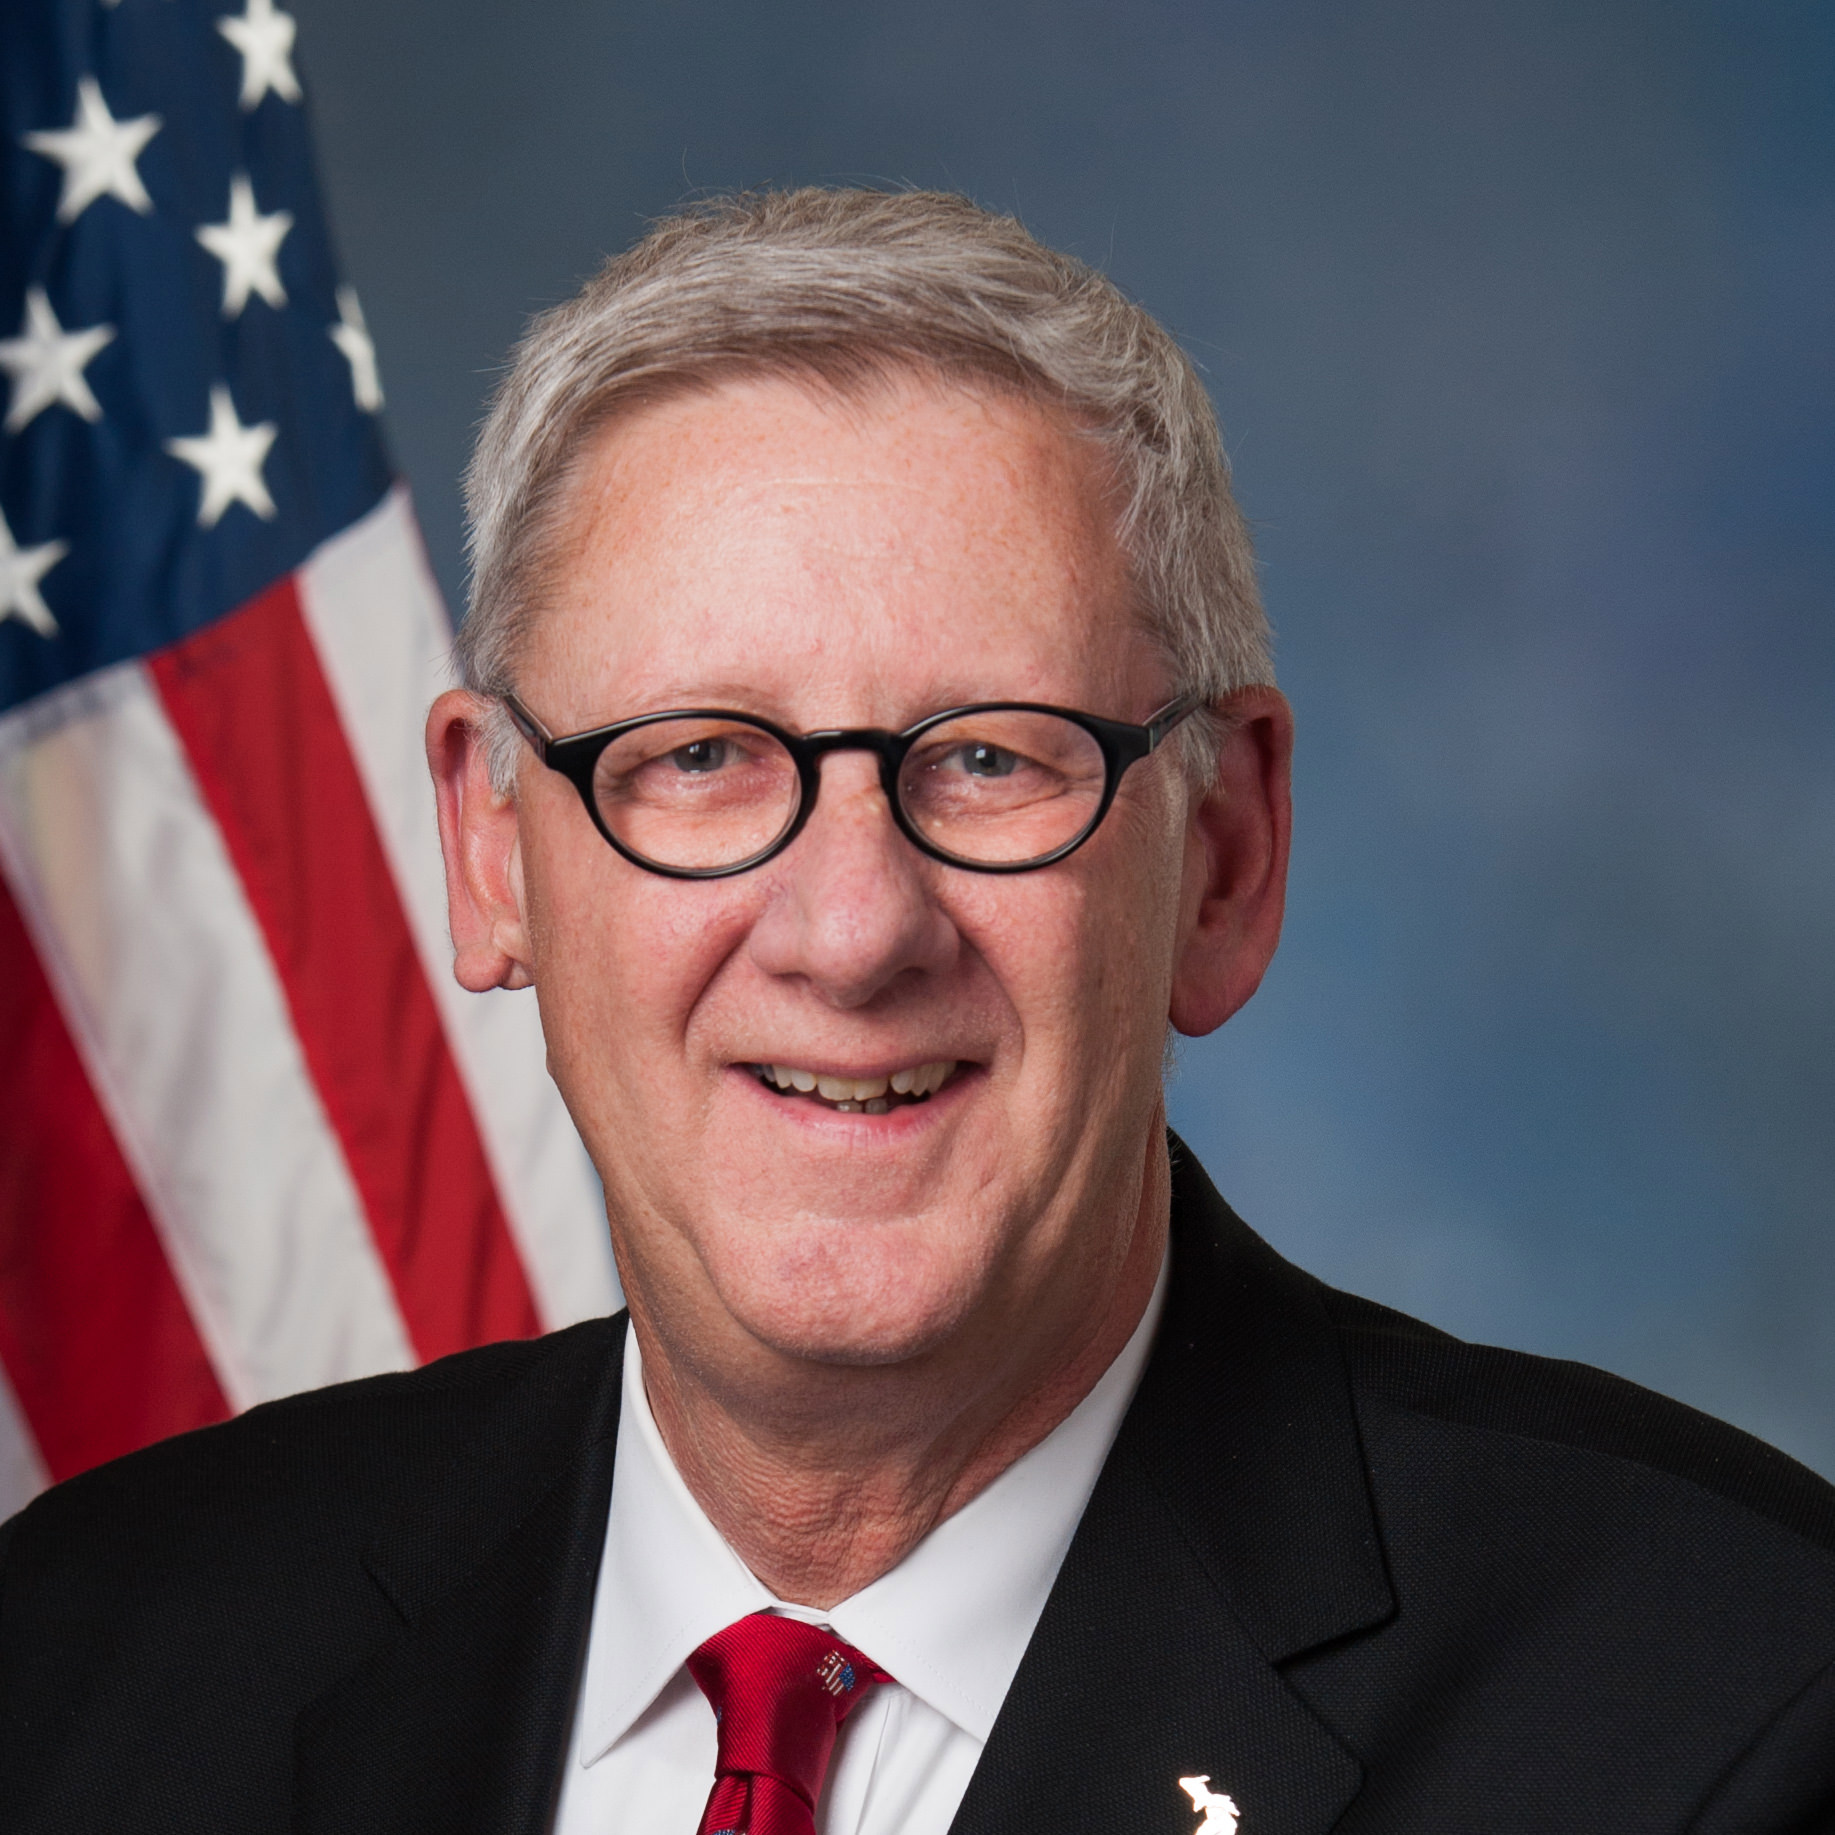 Paul Mitchell, US 10th District Representative